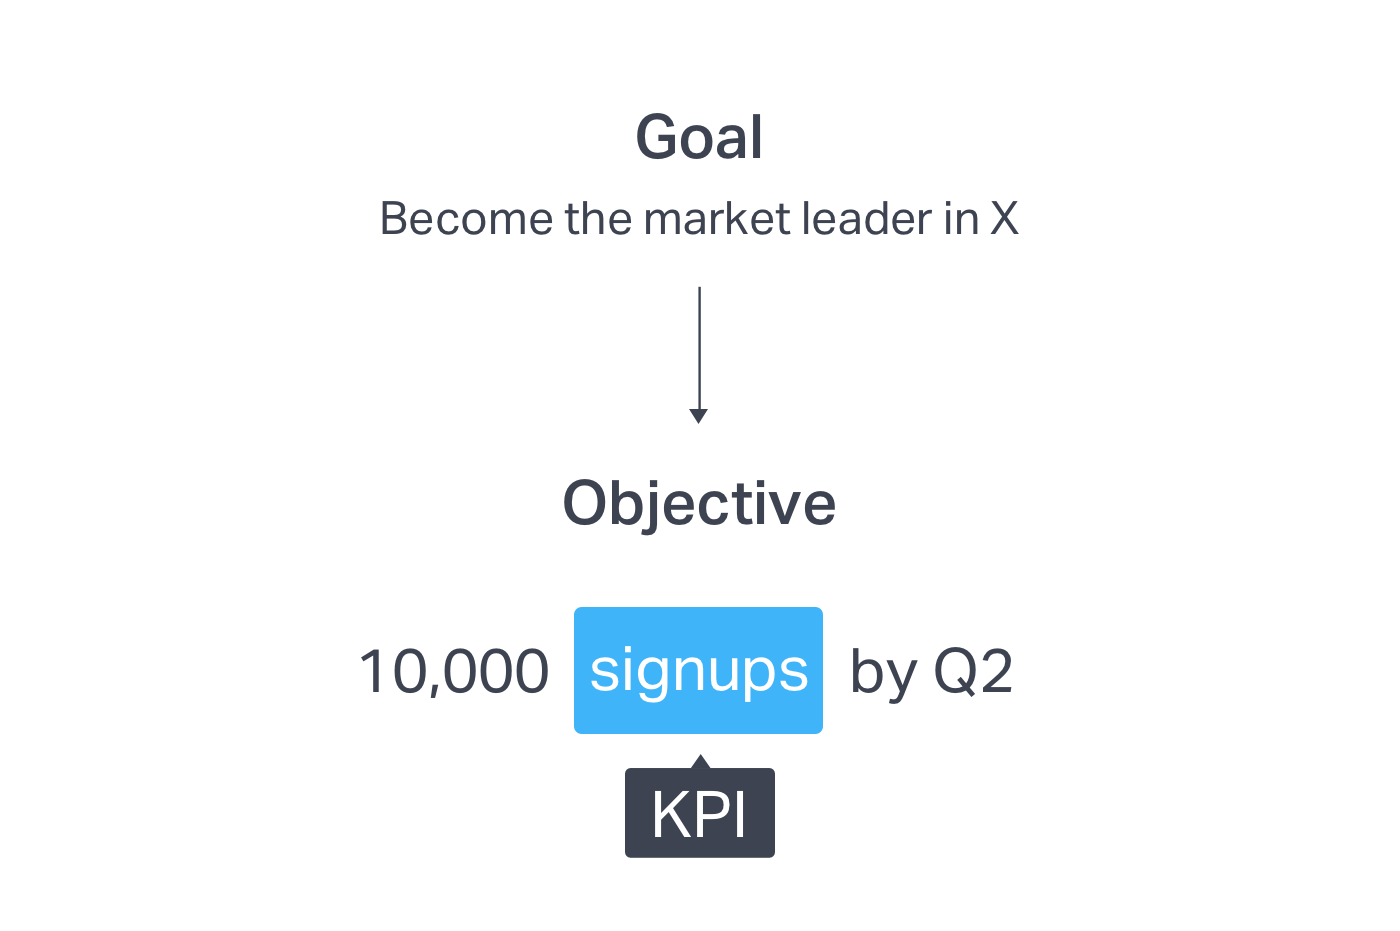 Visualization of how KPIs connect to goals